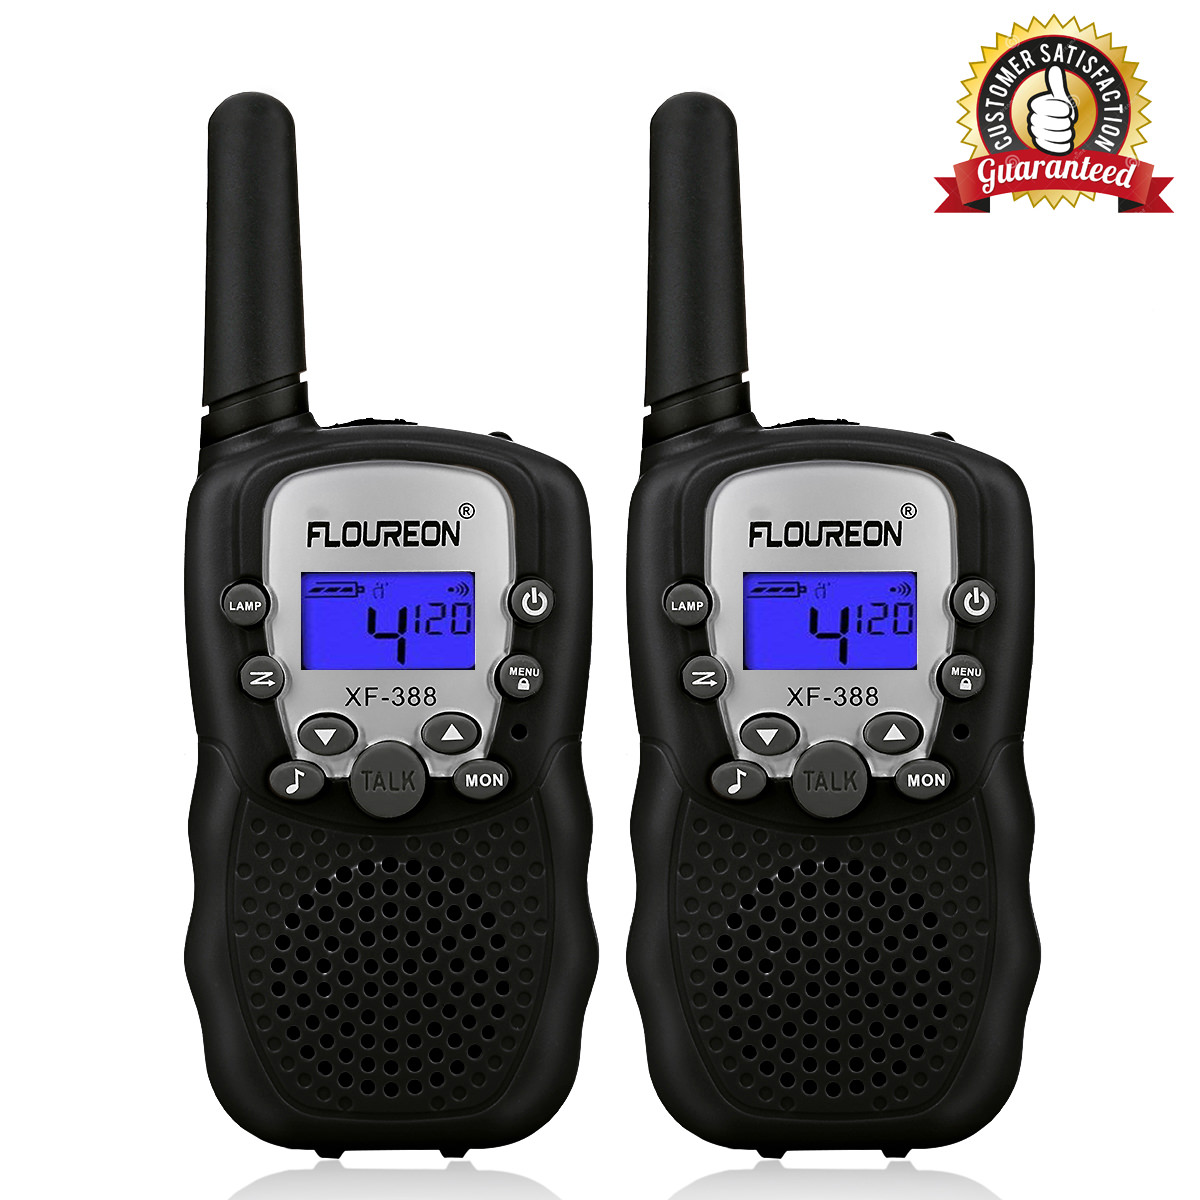 Kids Walkie Talkies, FLOUREON 22 Channel Two-Way Radio Best for Kids Long Range 3000M Handheld Outdoor Interphone/Portable Toy Radio Transceiver(2 Packs)